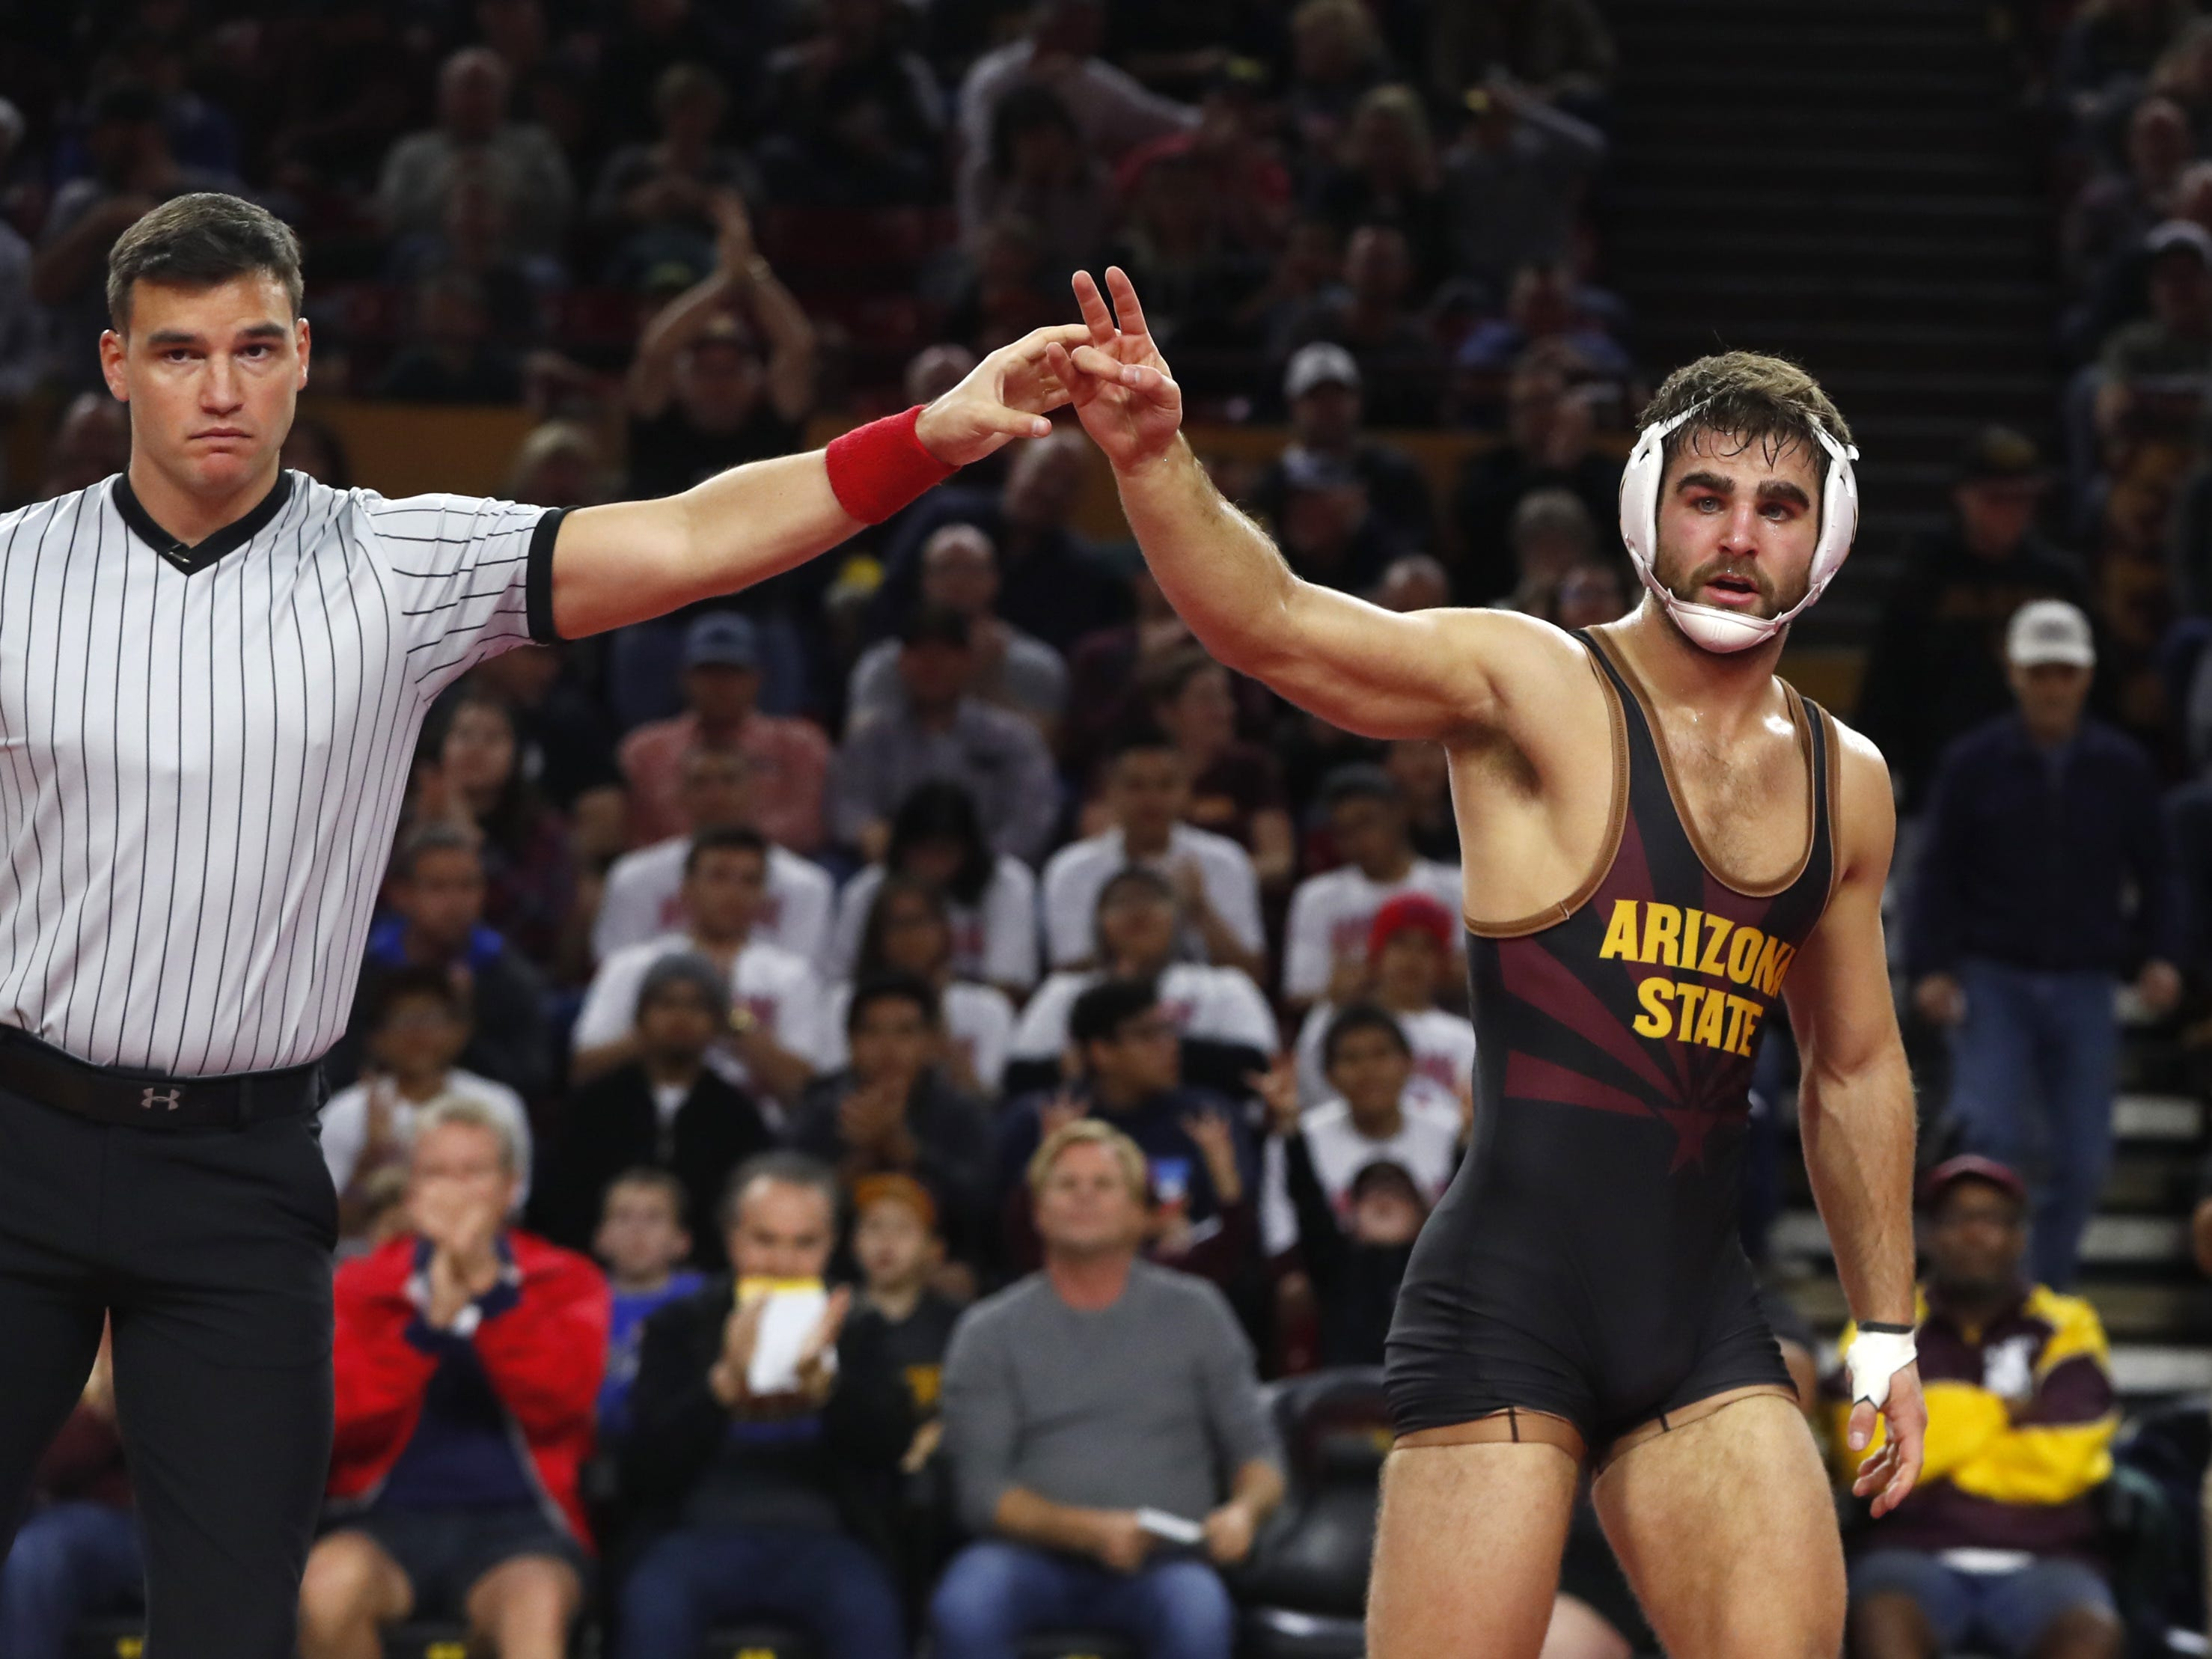 ASU's Josh Shields (in black) wins over Michigan's Logan Massa (in yellow and blue) during a 165 lbs match at Wells Fargo Arena in Tempe, Ariz. on January 5, 2019.